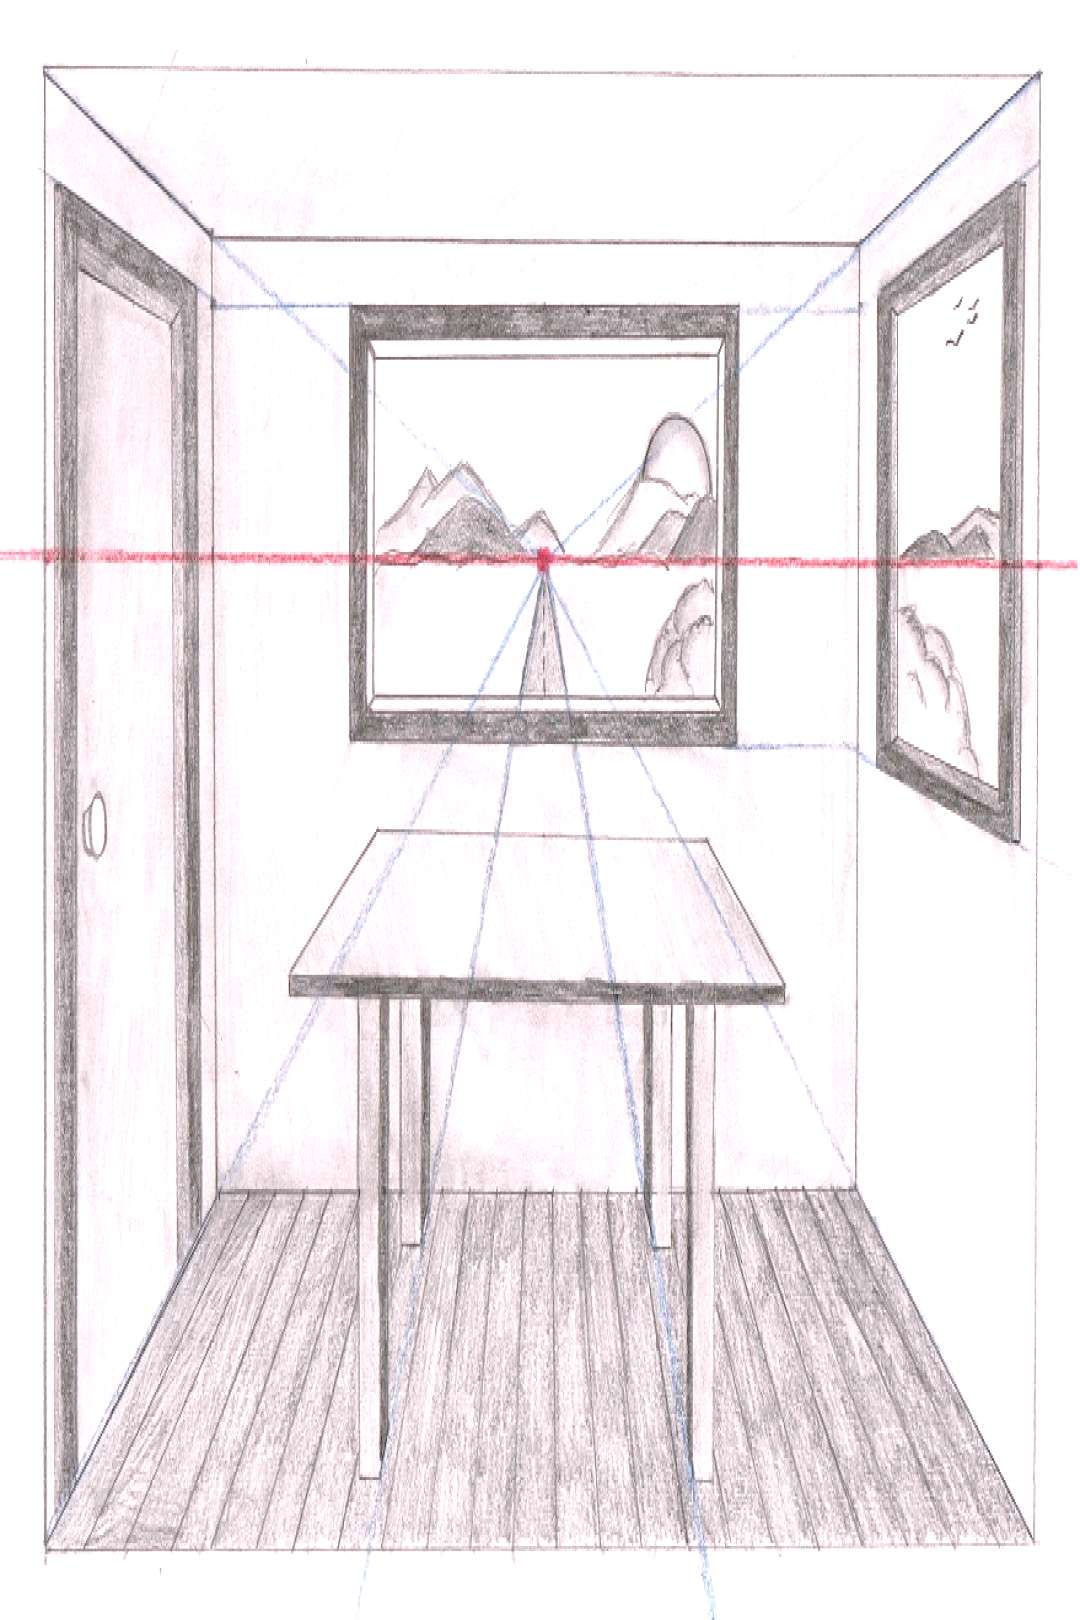 Linear Perspective Drawing Lesson Series [6 of 6] – One Point Perspective Room Drawing – Draw B